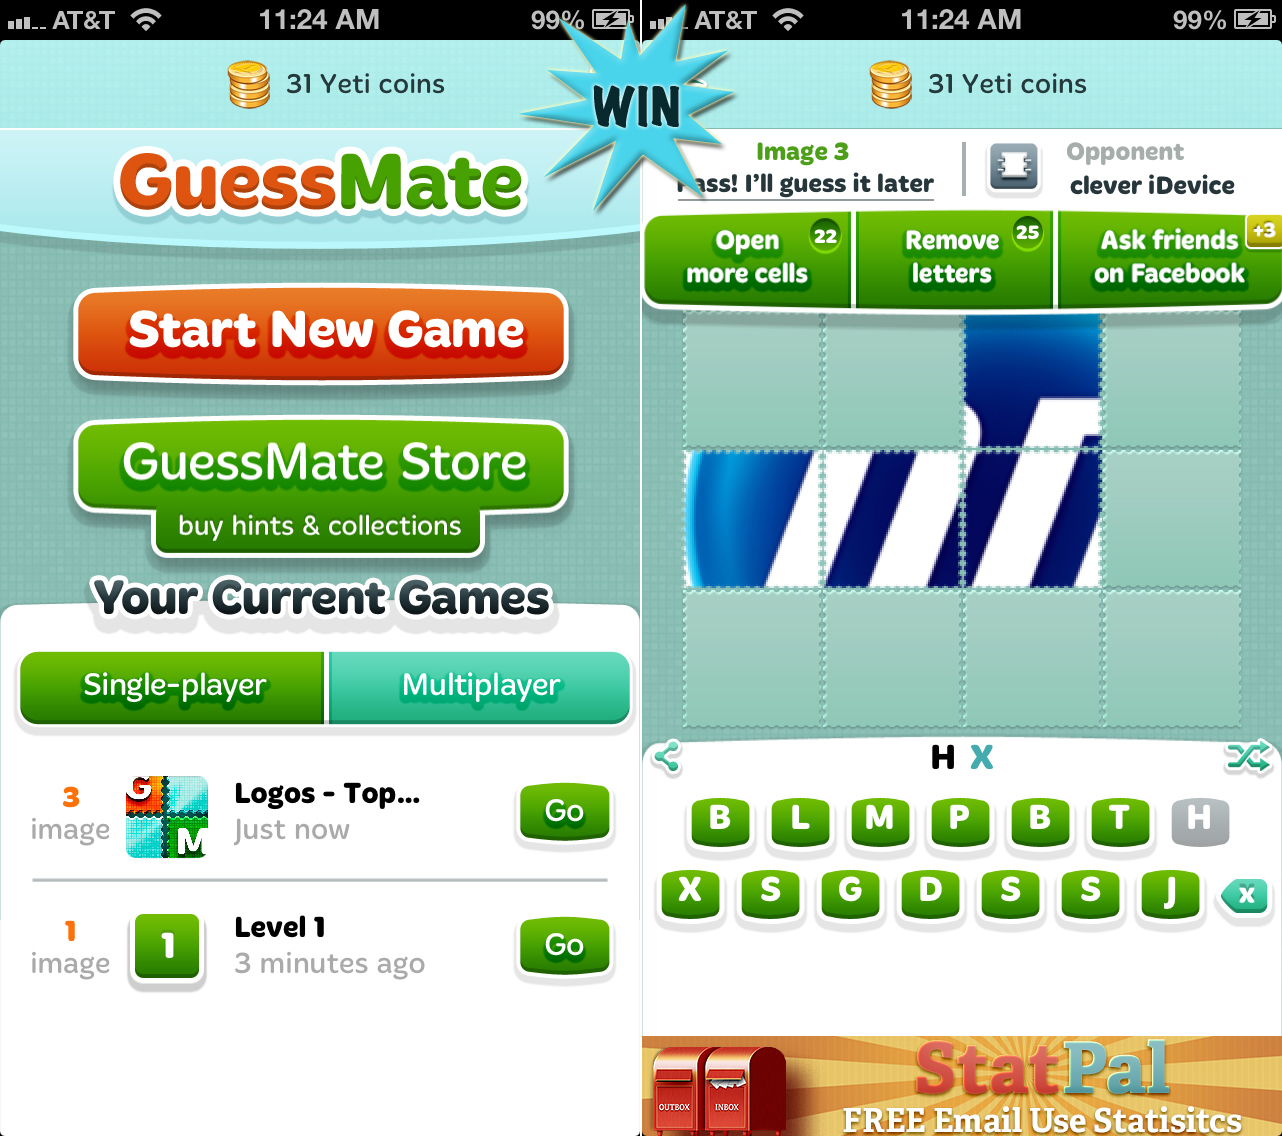 Win A $10 iTunes Gift Card To Unlock All Kinds Of Content In GuessMate